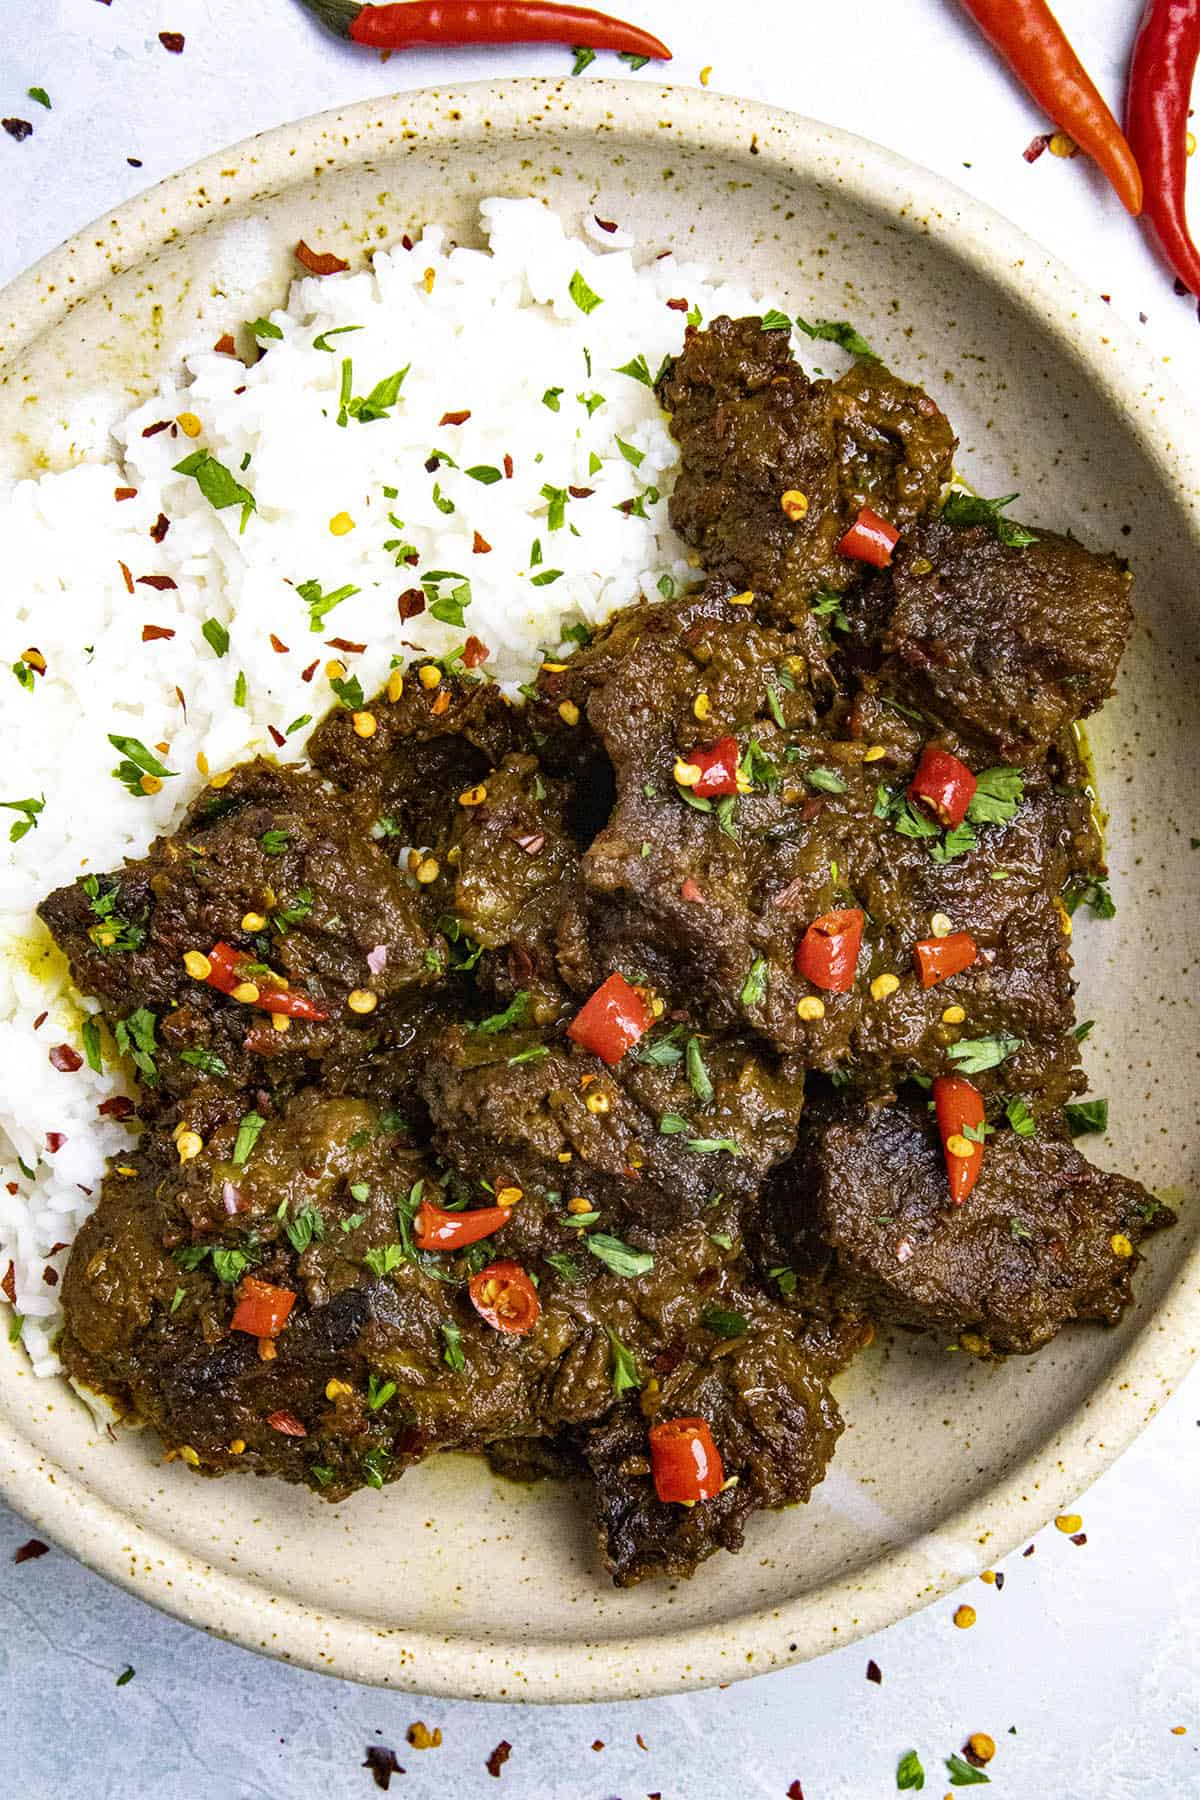 Beef Rendang in a bowl with sliced chili peppers as garnish